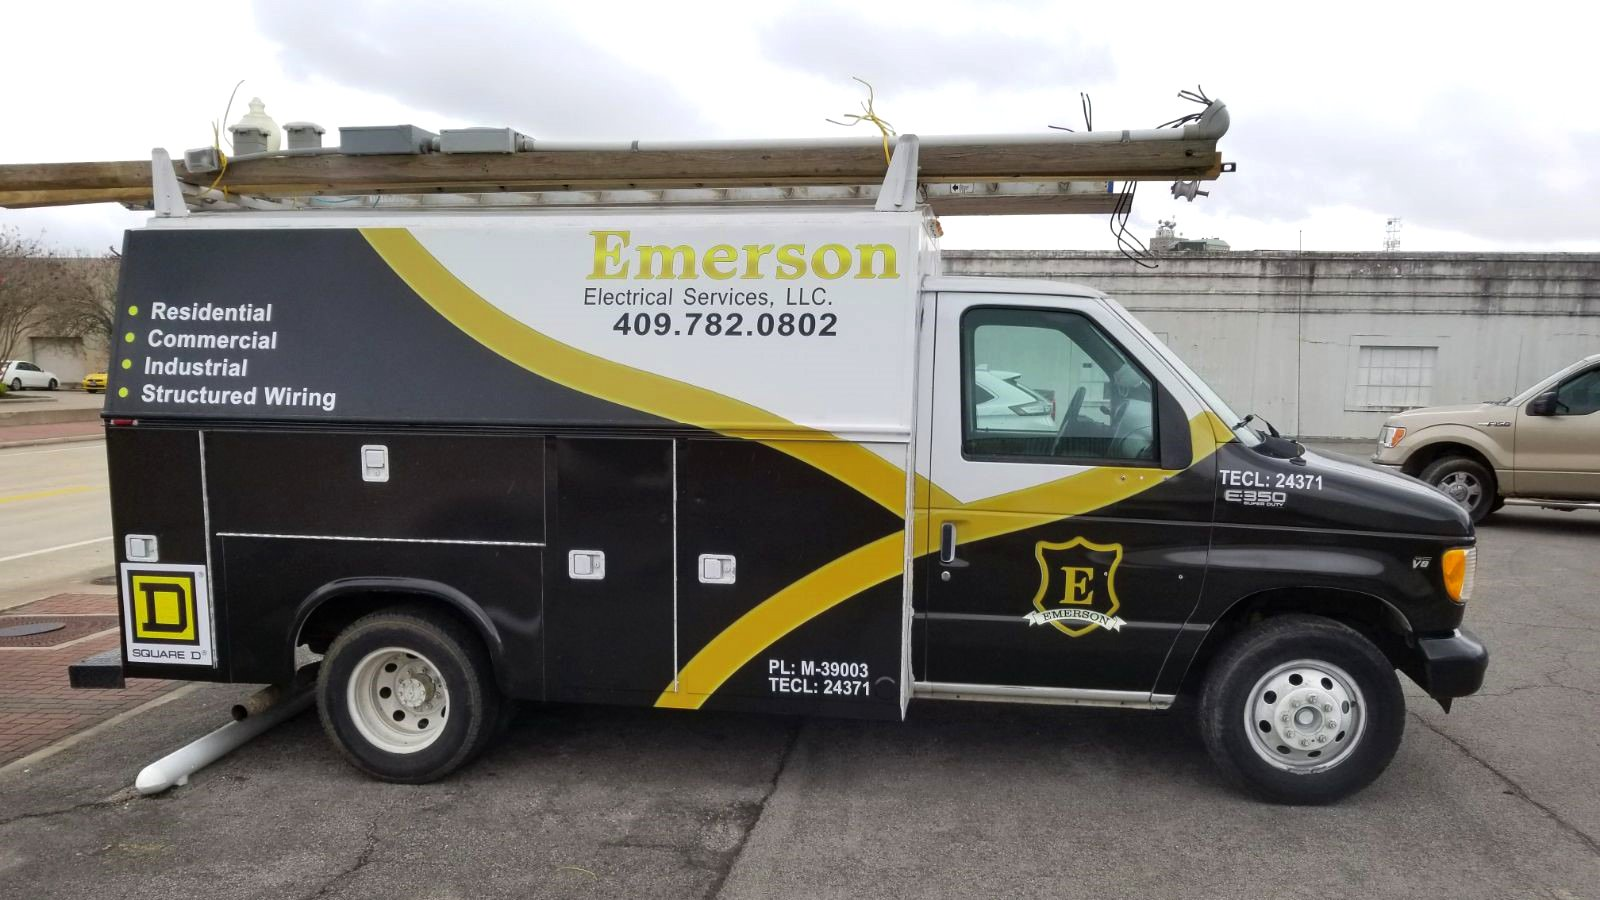 Emerson Electrical Services Generators Lumberton Tx Commercial Motor Wiring Complete Residential